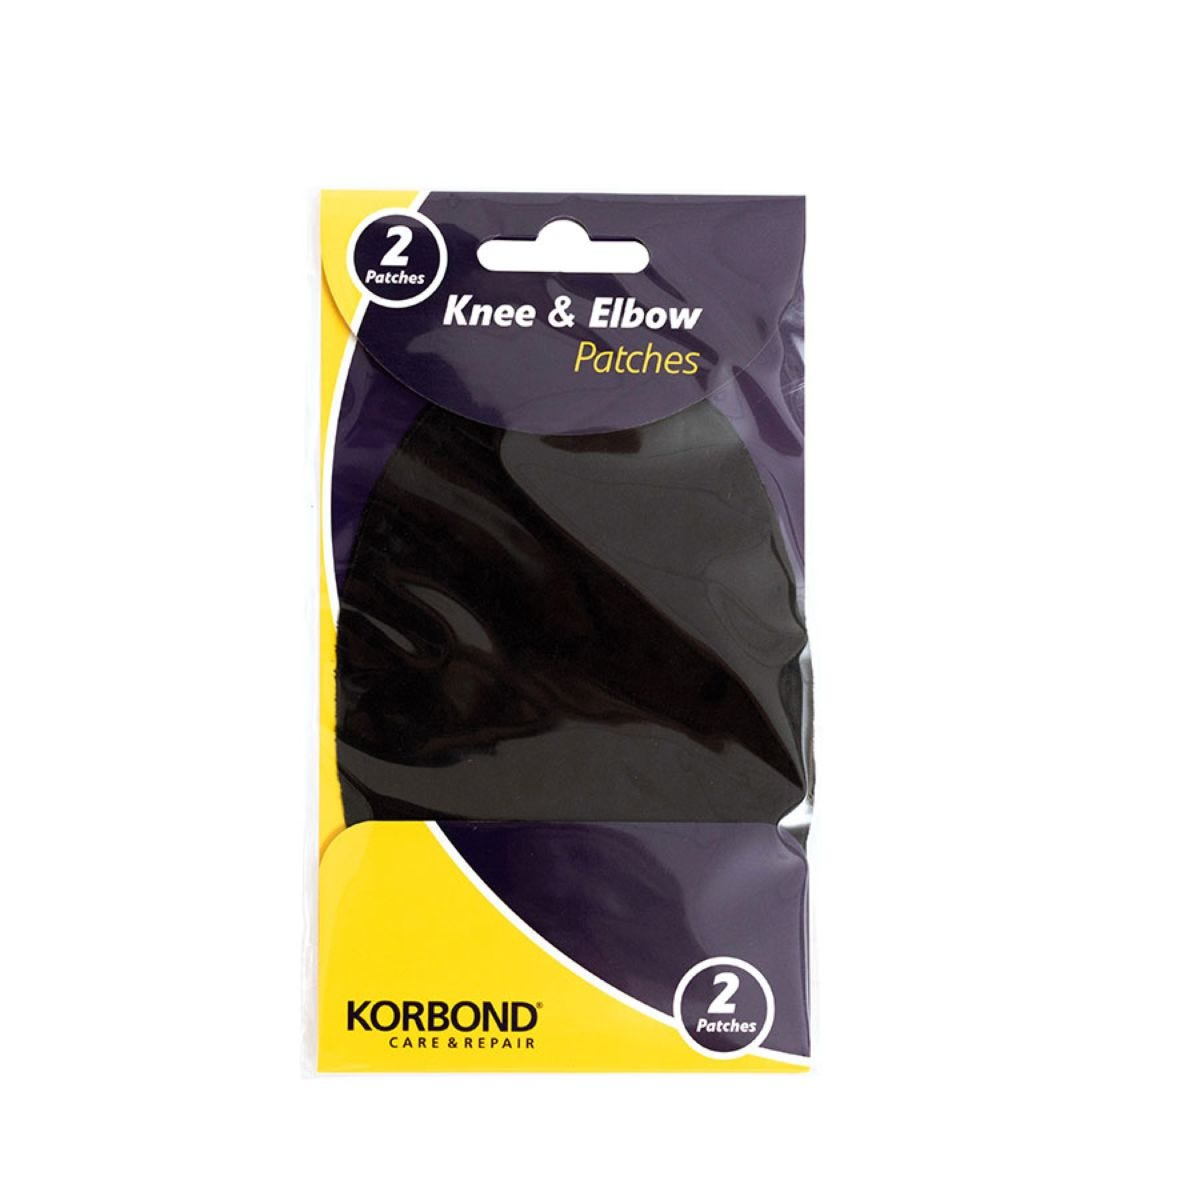 Korbond Care & Repair Knee and Elbow Patches - Black